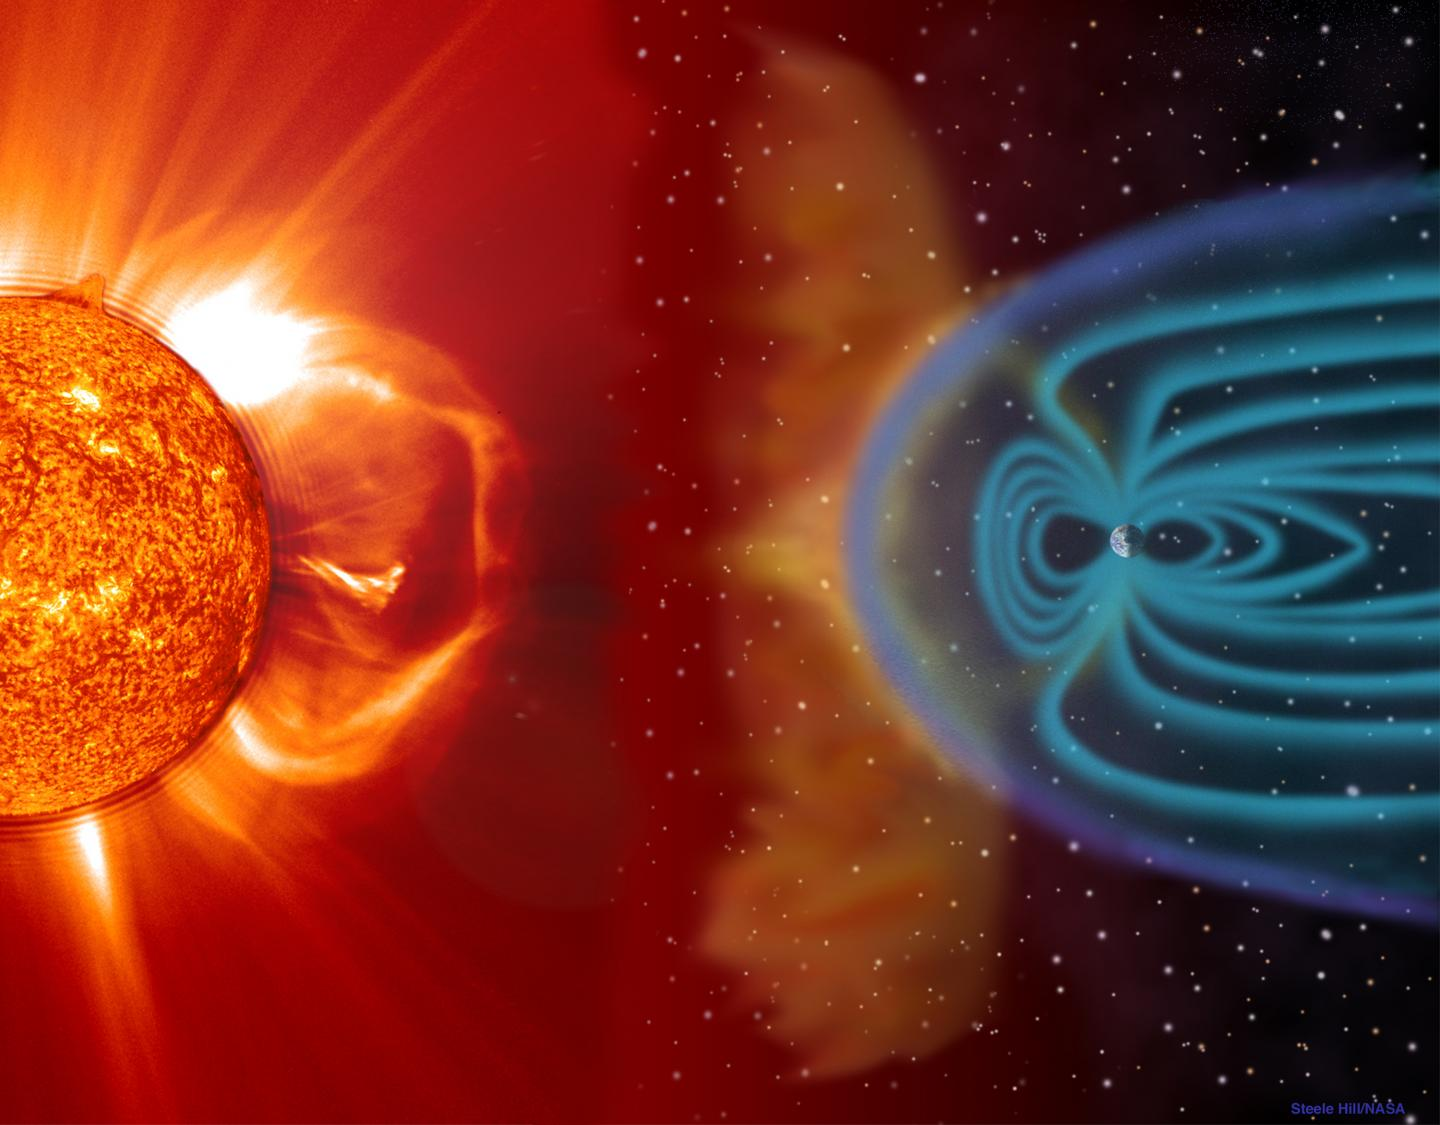 An illustration of material being ejected from the Sun (left) interacting with the magnetosphere of the Earth (right).